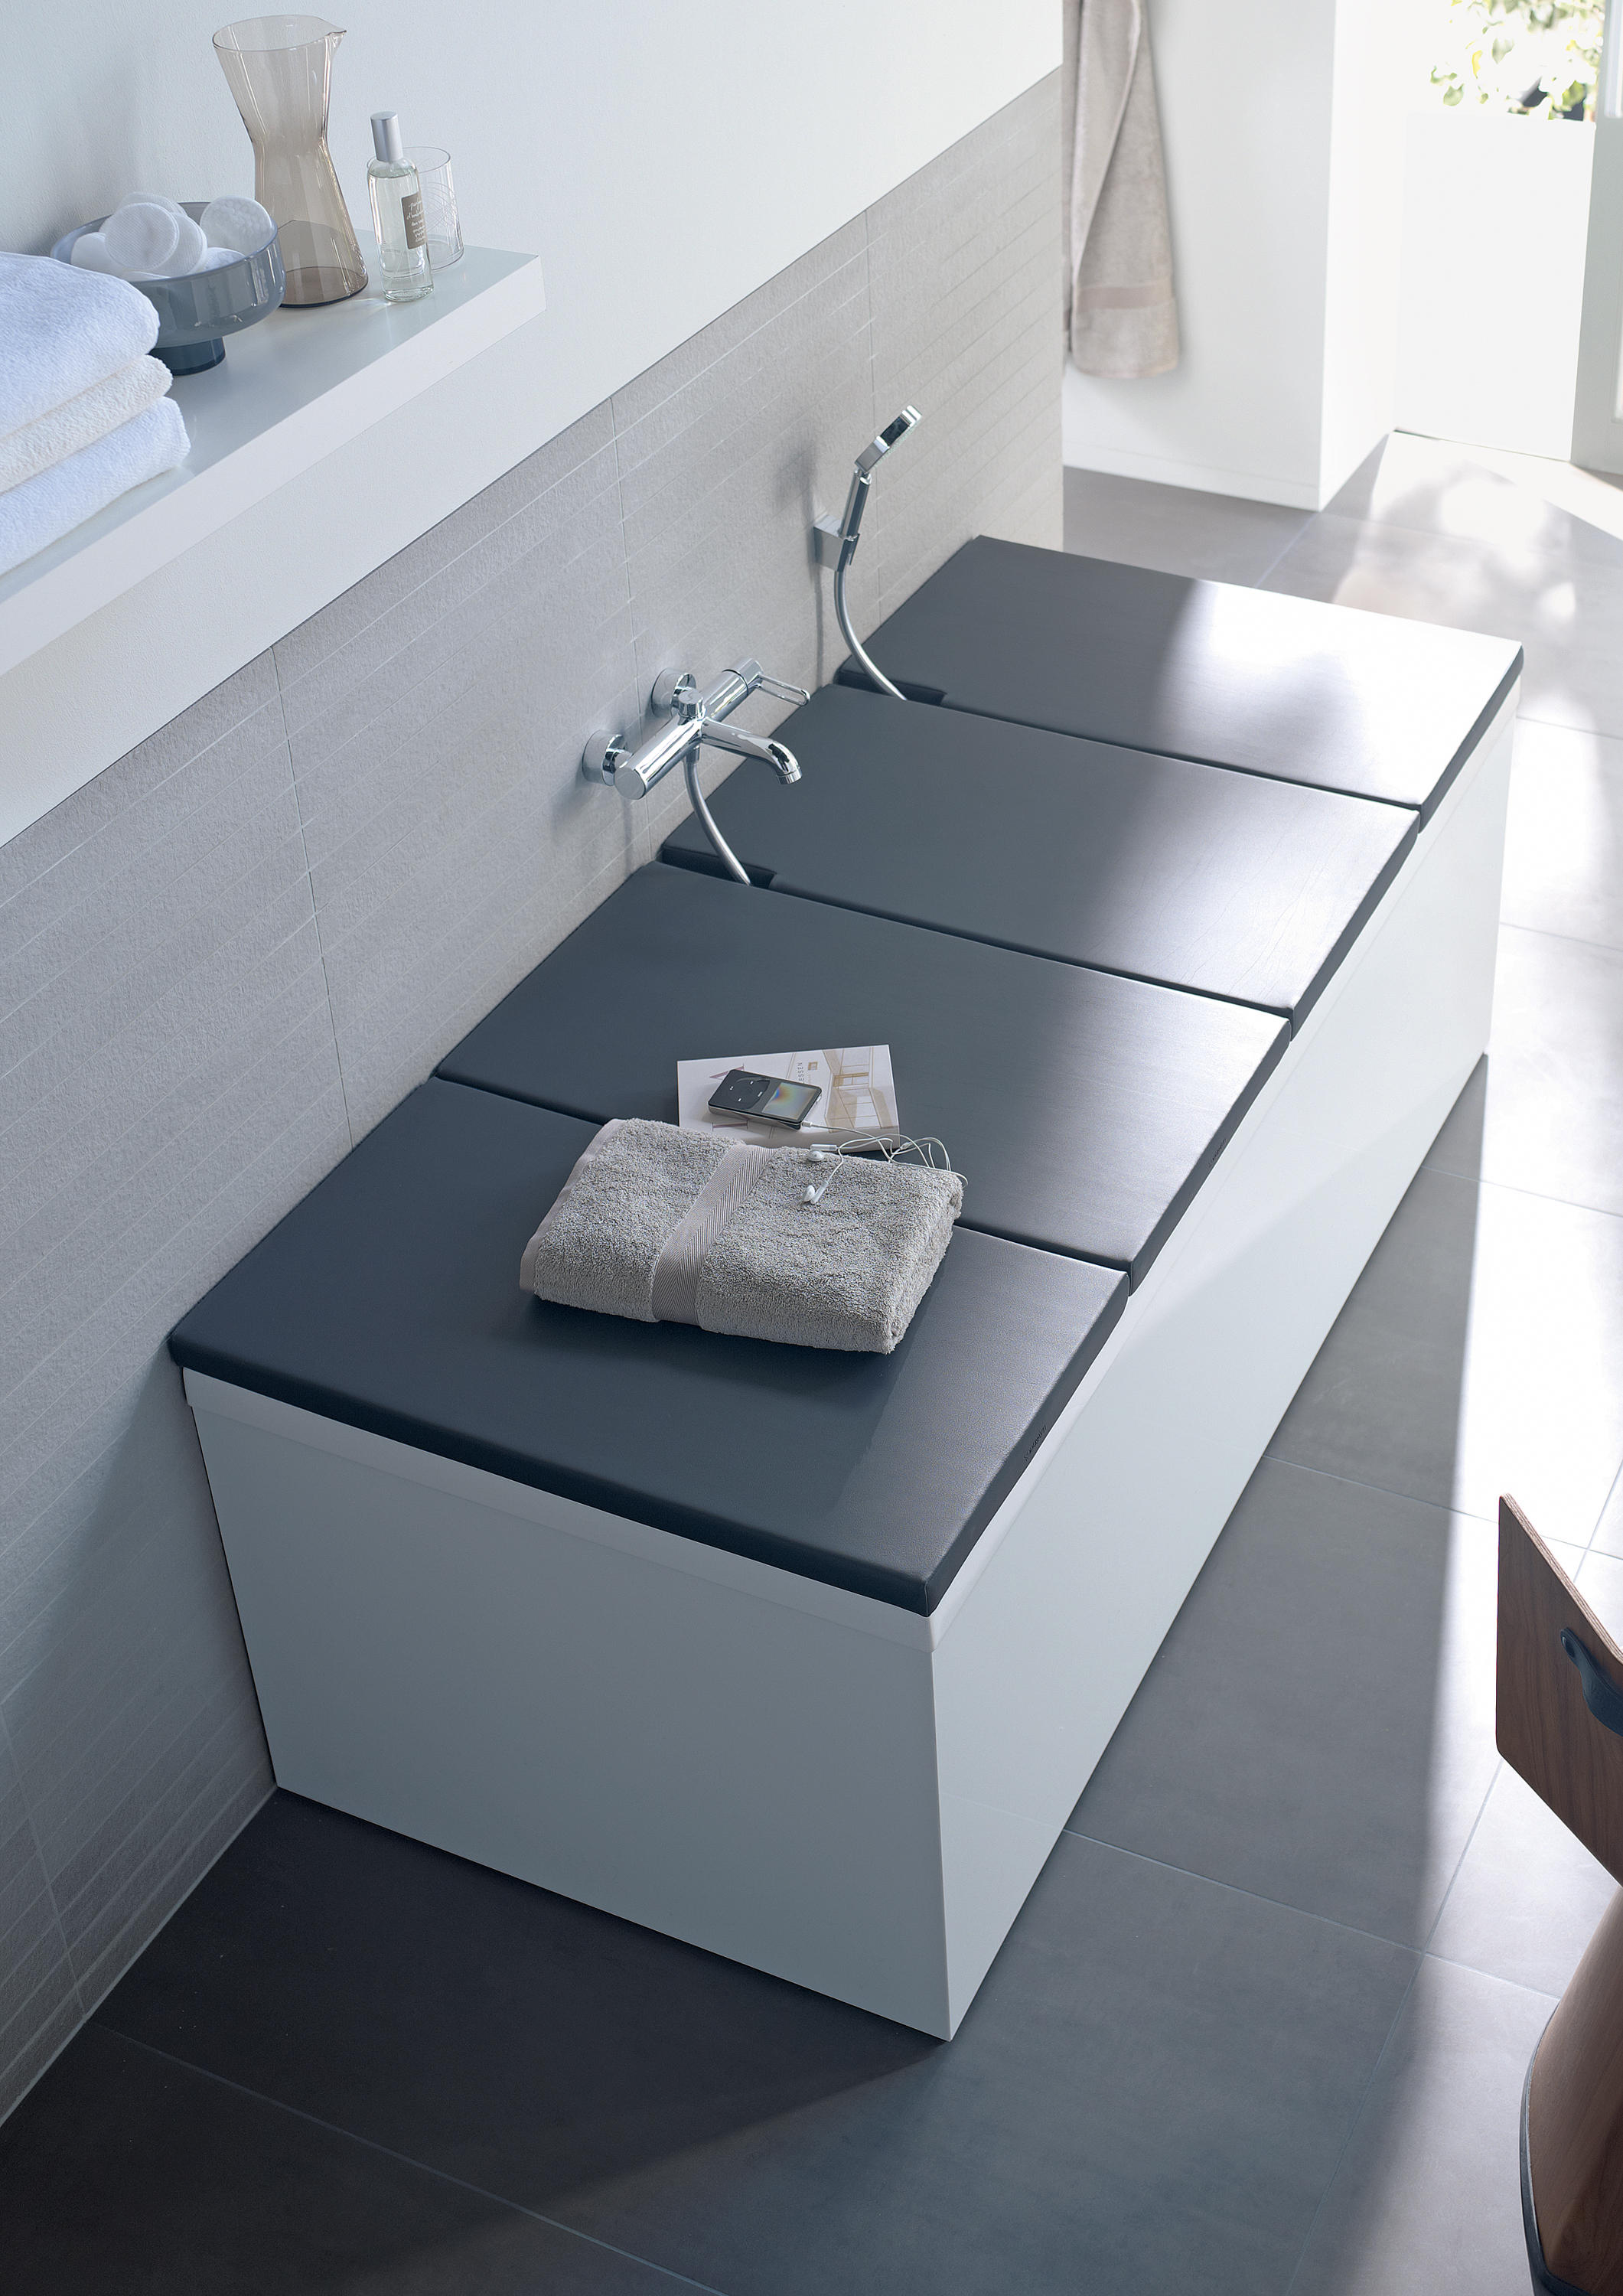 Merveilleux Bathtub Cover By DURAVIT | Bath Shelves